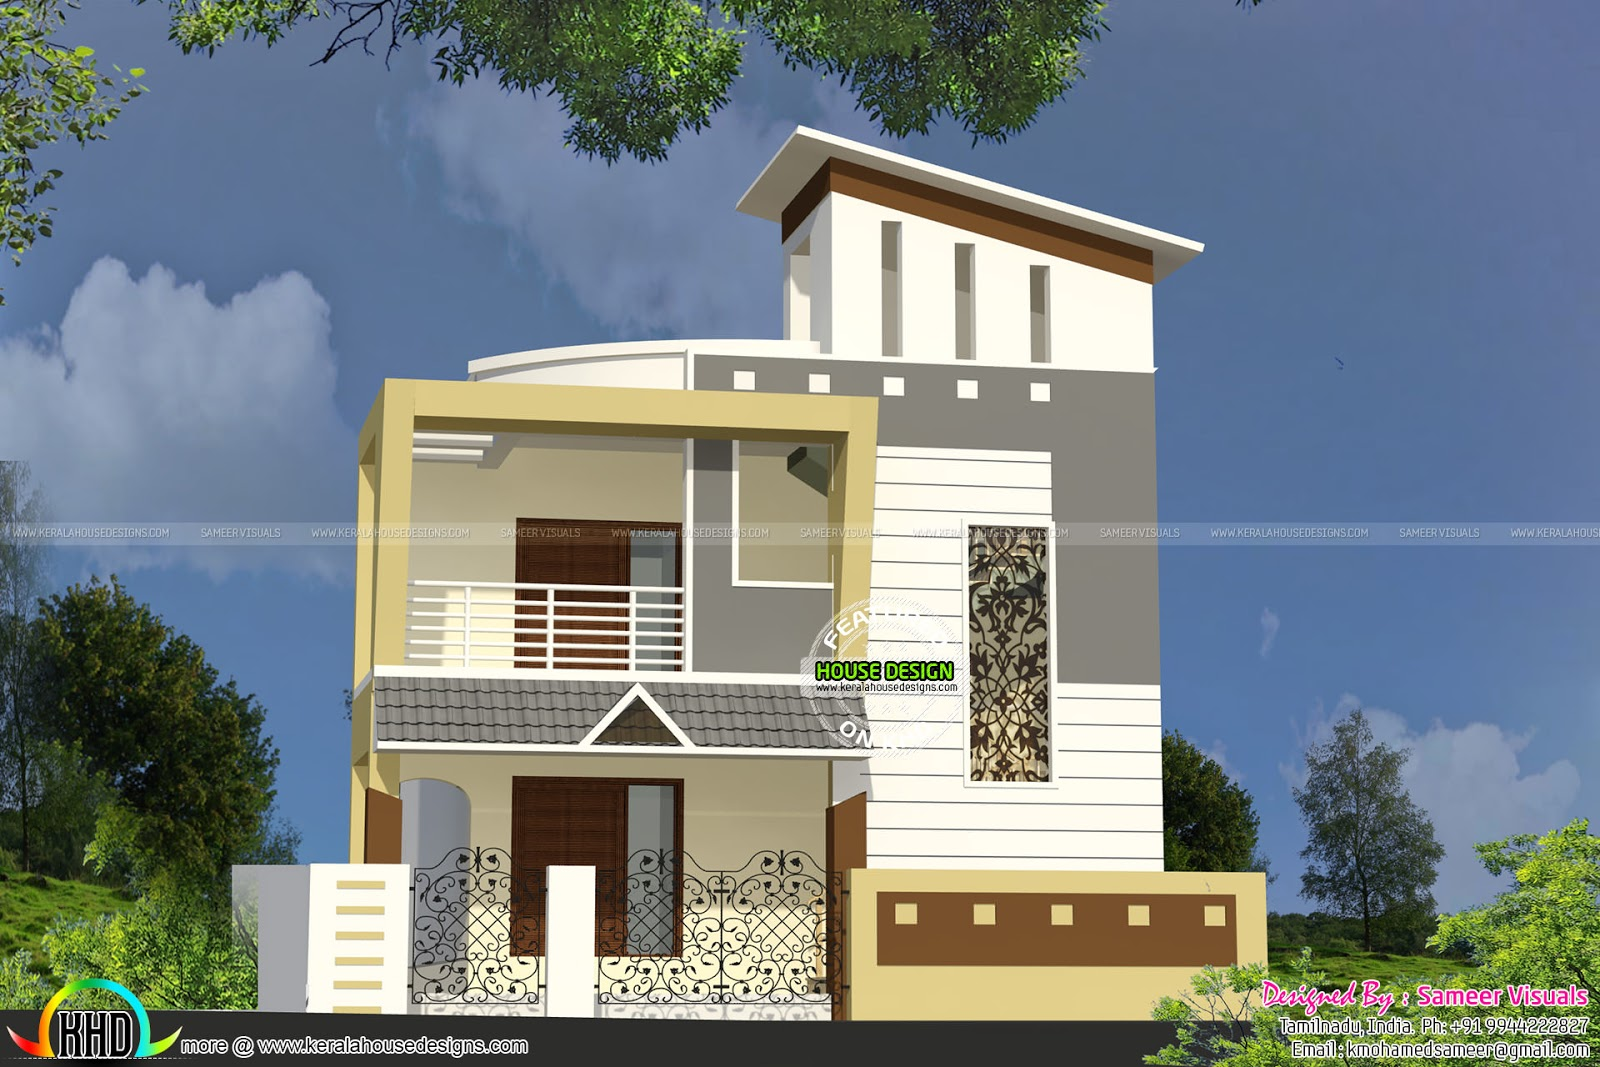 Double floor small home kerala home design and floor plans for Small two floor house